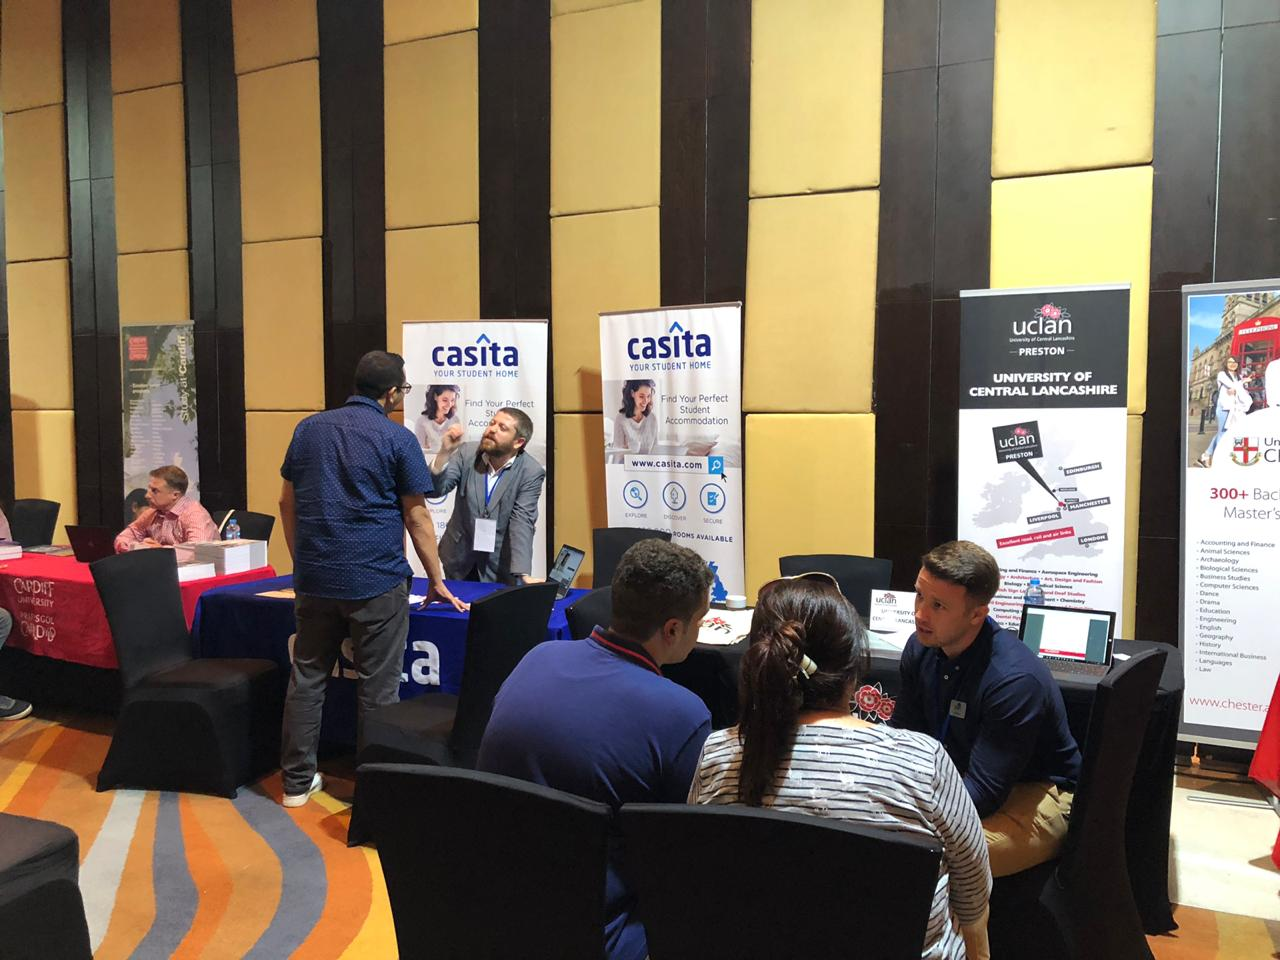 Cairo's Casita Booth for Students